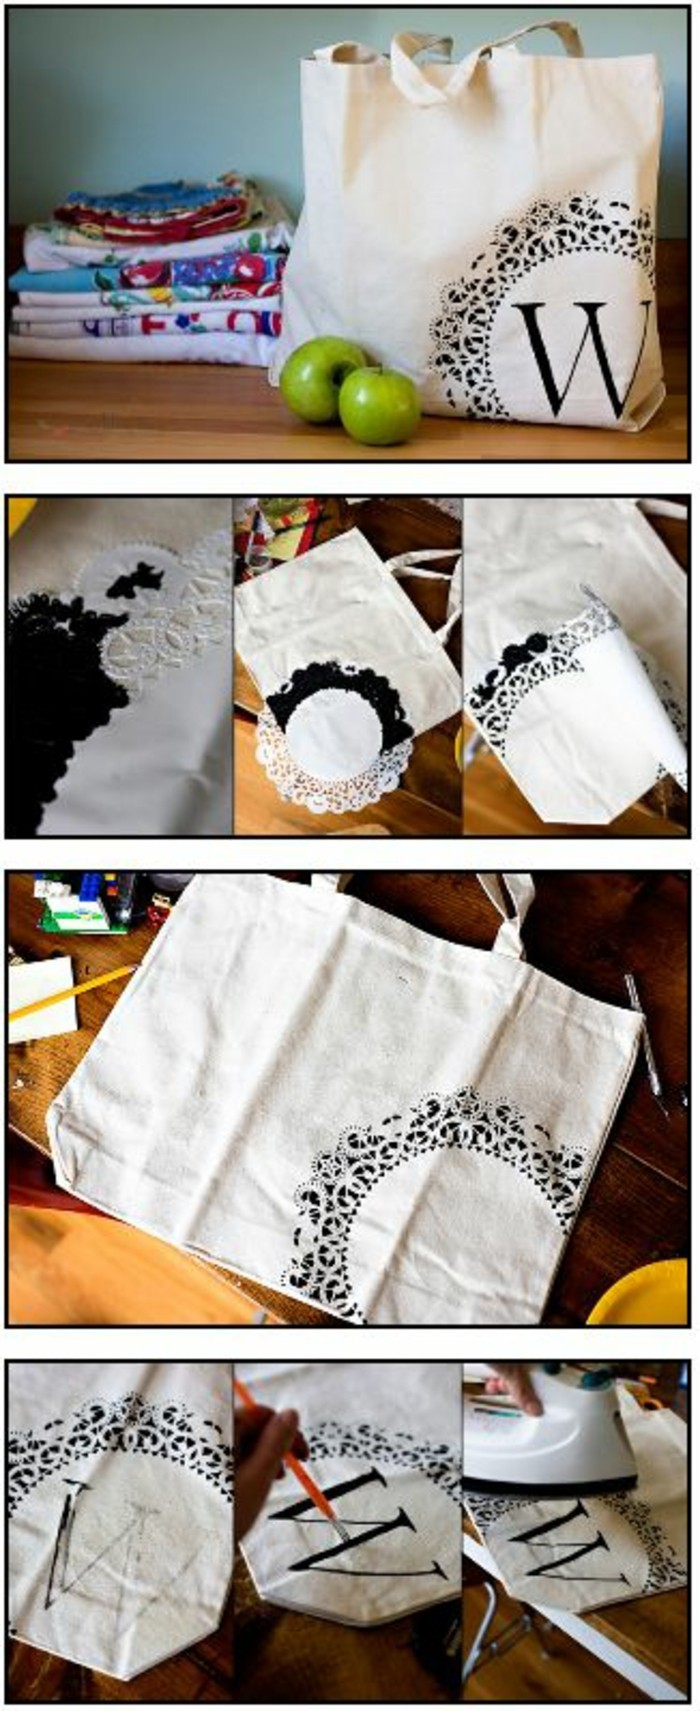 white shopping bag, letter w, black decoration, painted on it, creative homemade gifts, diy tutorial